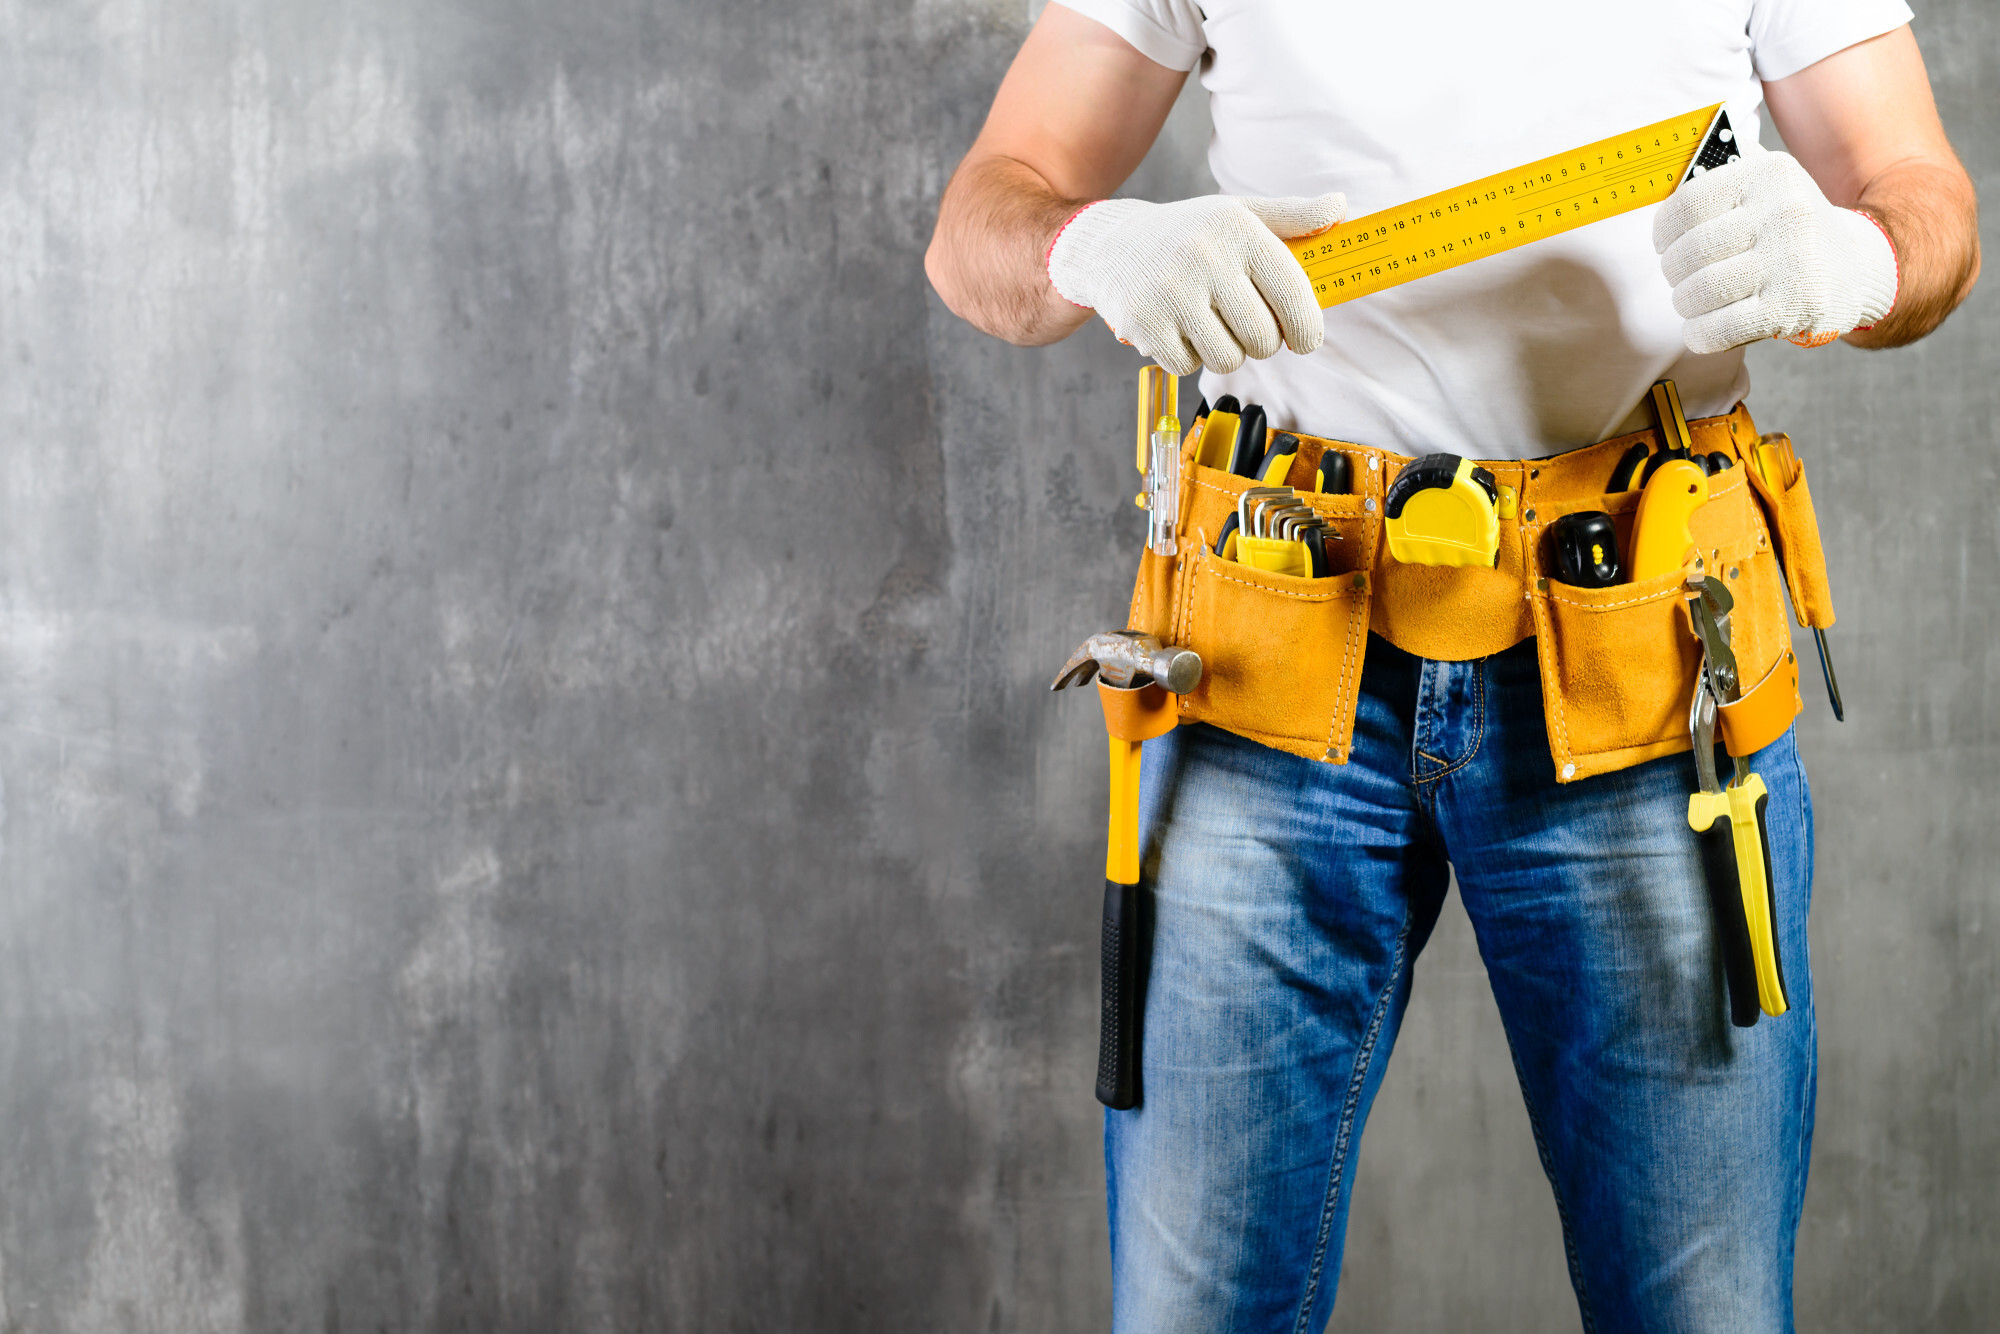 Top 15 Reasons to Have a Handyman Service On Your Speed Dial